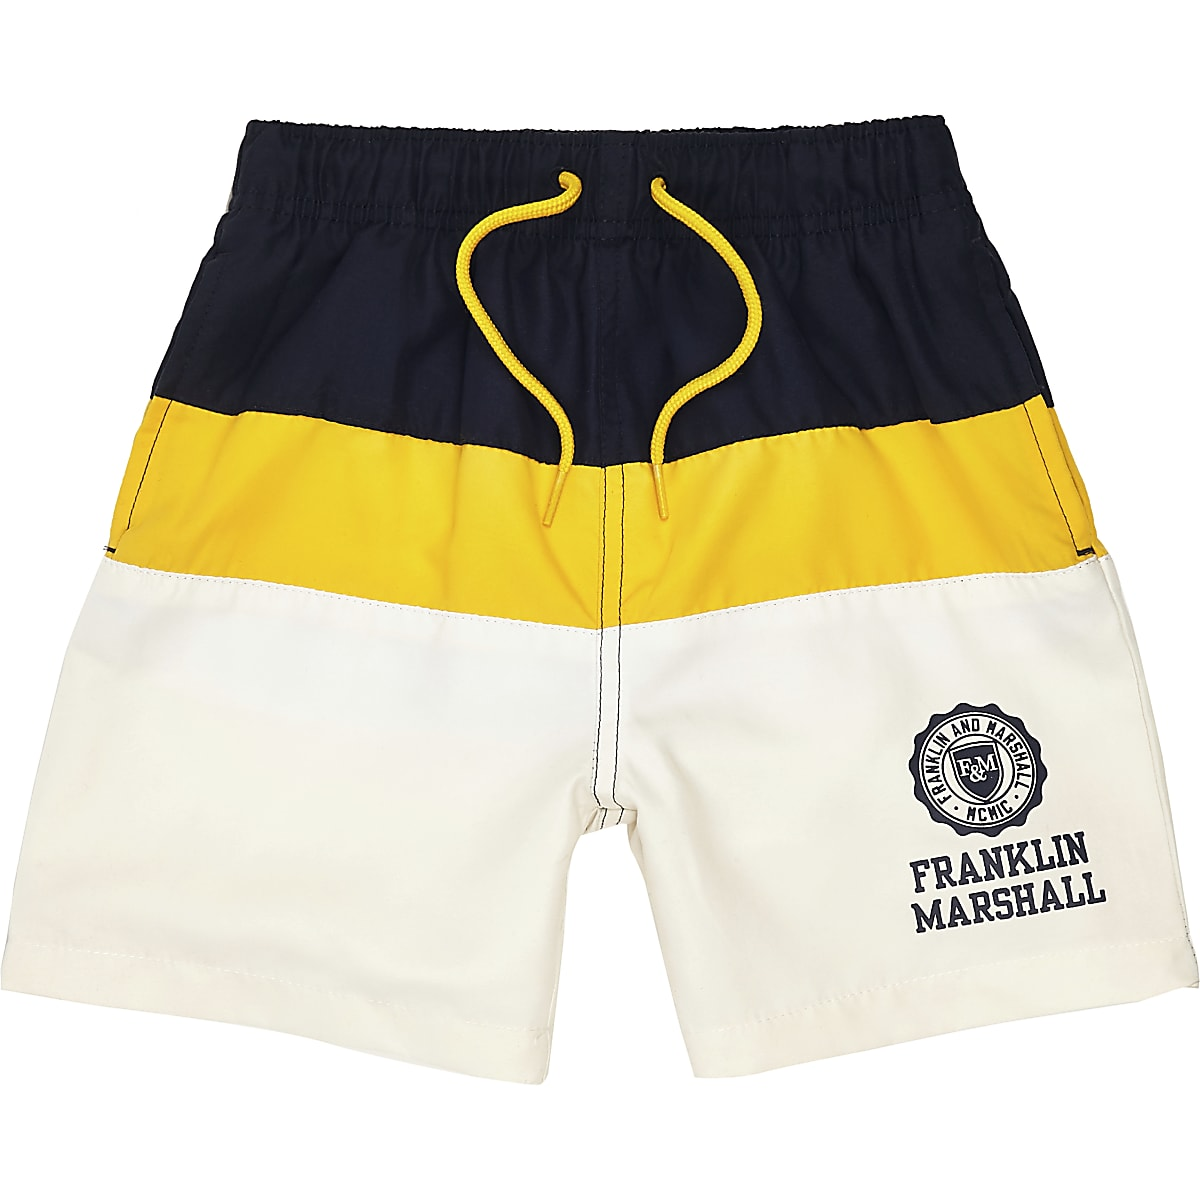 Boys navy Franklin & Marshall swim shorts